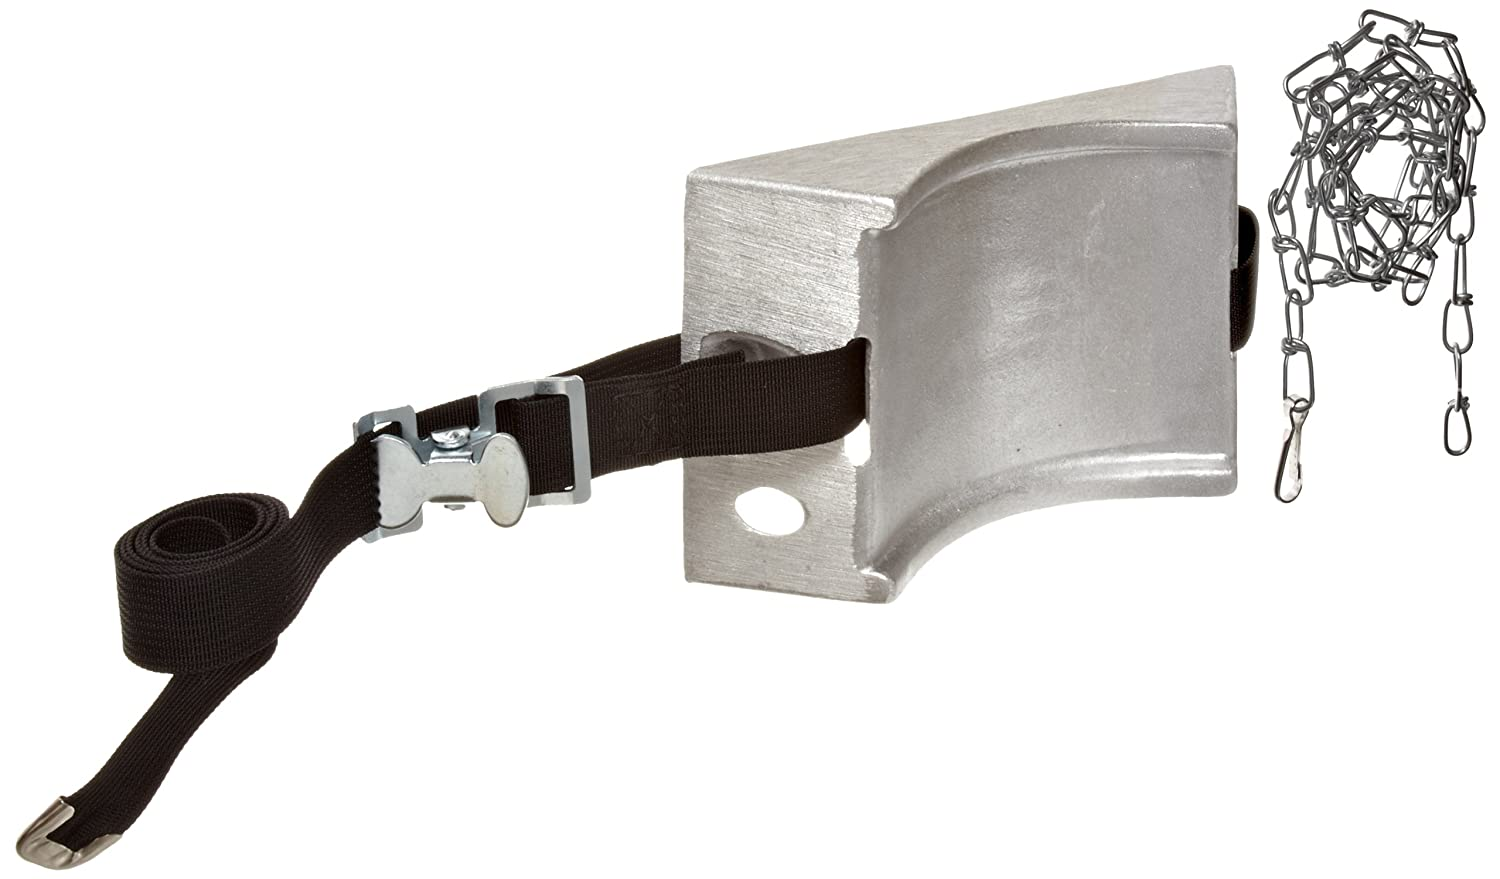 Talboys 717 Aluminum Cylinder Wall Bracket with Strap and Chain 1.875 Length x 8.125 Width x 4.625 Height